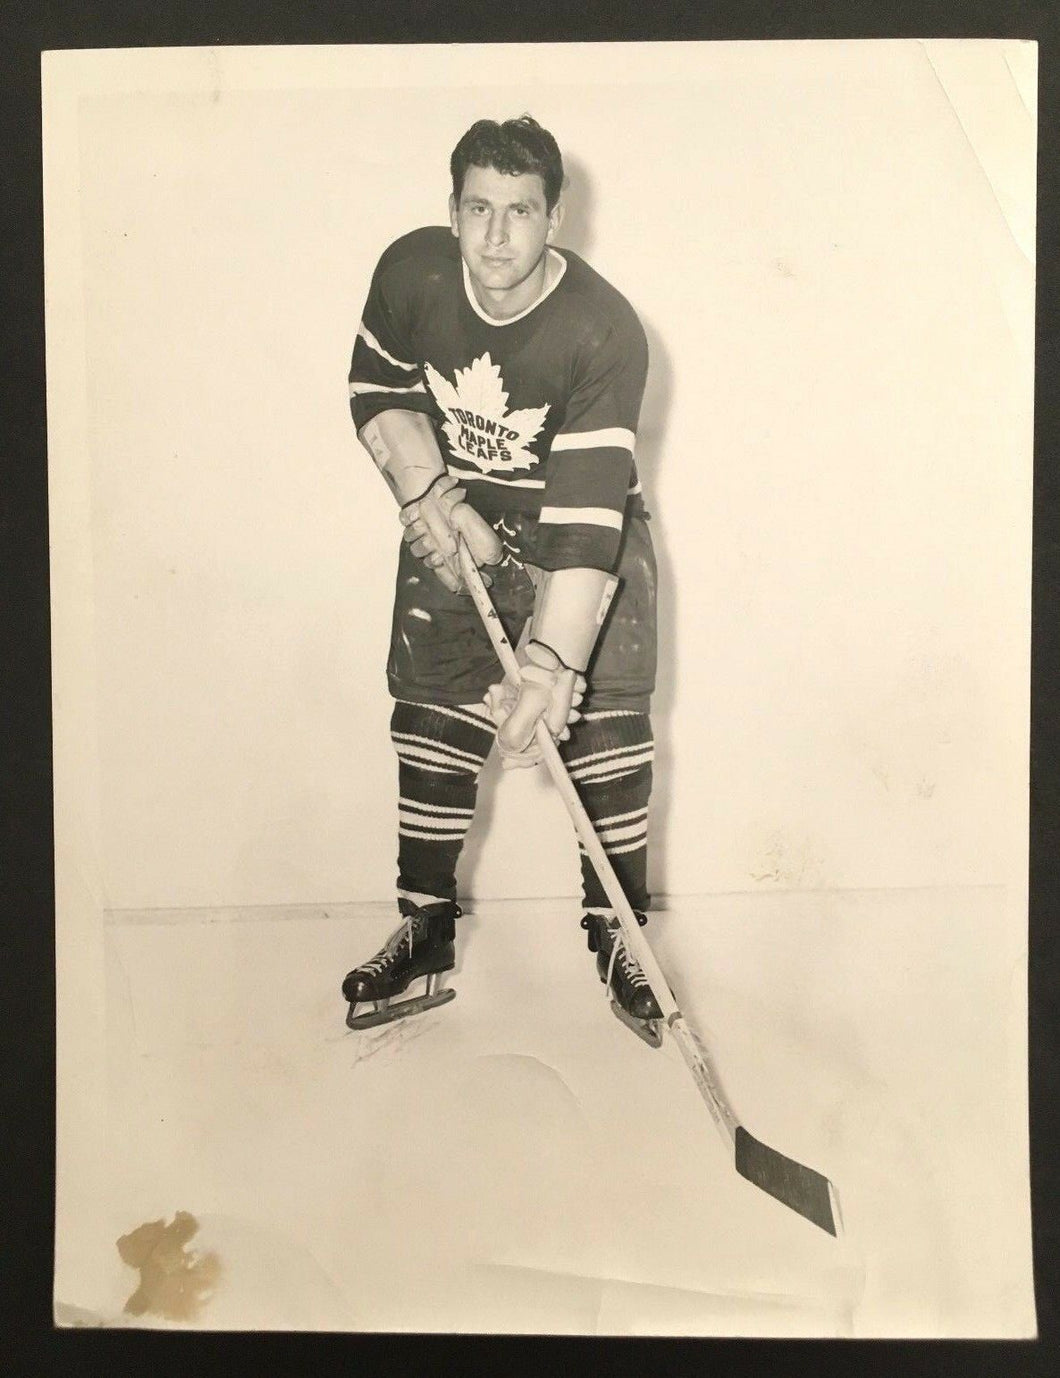 1949 Toronto Maple Leafs Vic Lynn Turofsky Photo Vintage Hockey NHL